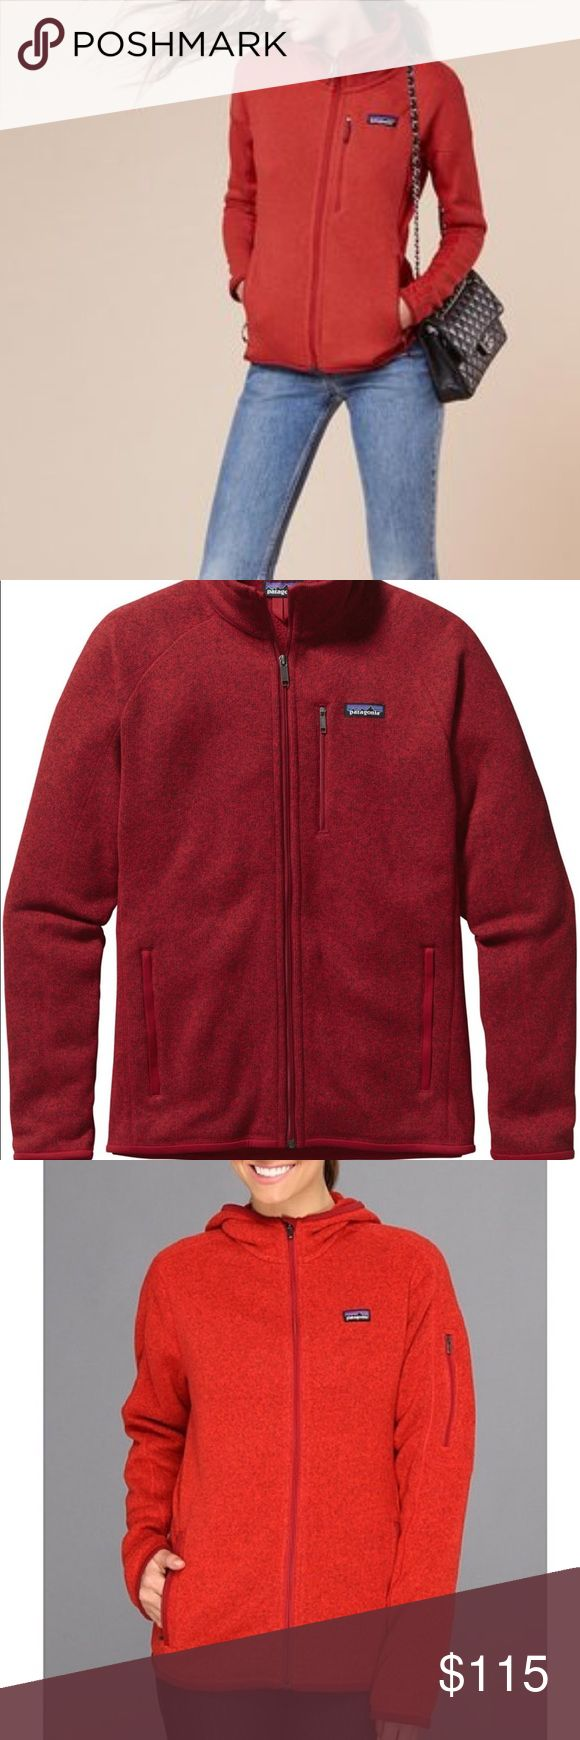 Patagonia better sweater red jacket Second photo shows color!  ⚡️NO trades  ⚡️open to ALL offers!  ⚡️ bundle for MAJOR discounts!  ⚡️feel free to ask any questions ⚡️ I will not respond to offers in the comments, please use the offer button for all offers.  ⚡️Please only ask for model photos if you are very interested!  ⚡️All sales are final and all offers are binding.  ⚡️ If I miss your comment, please comment again! Patagonia Jackets & Coats